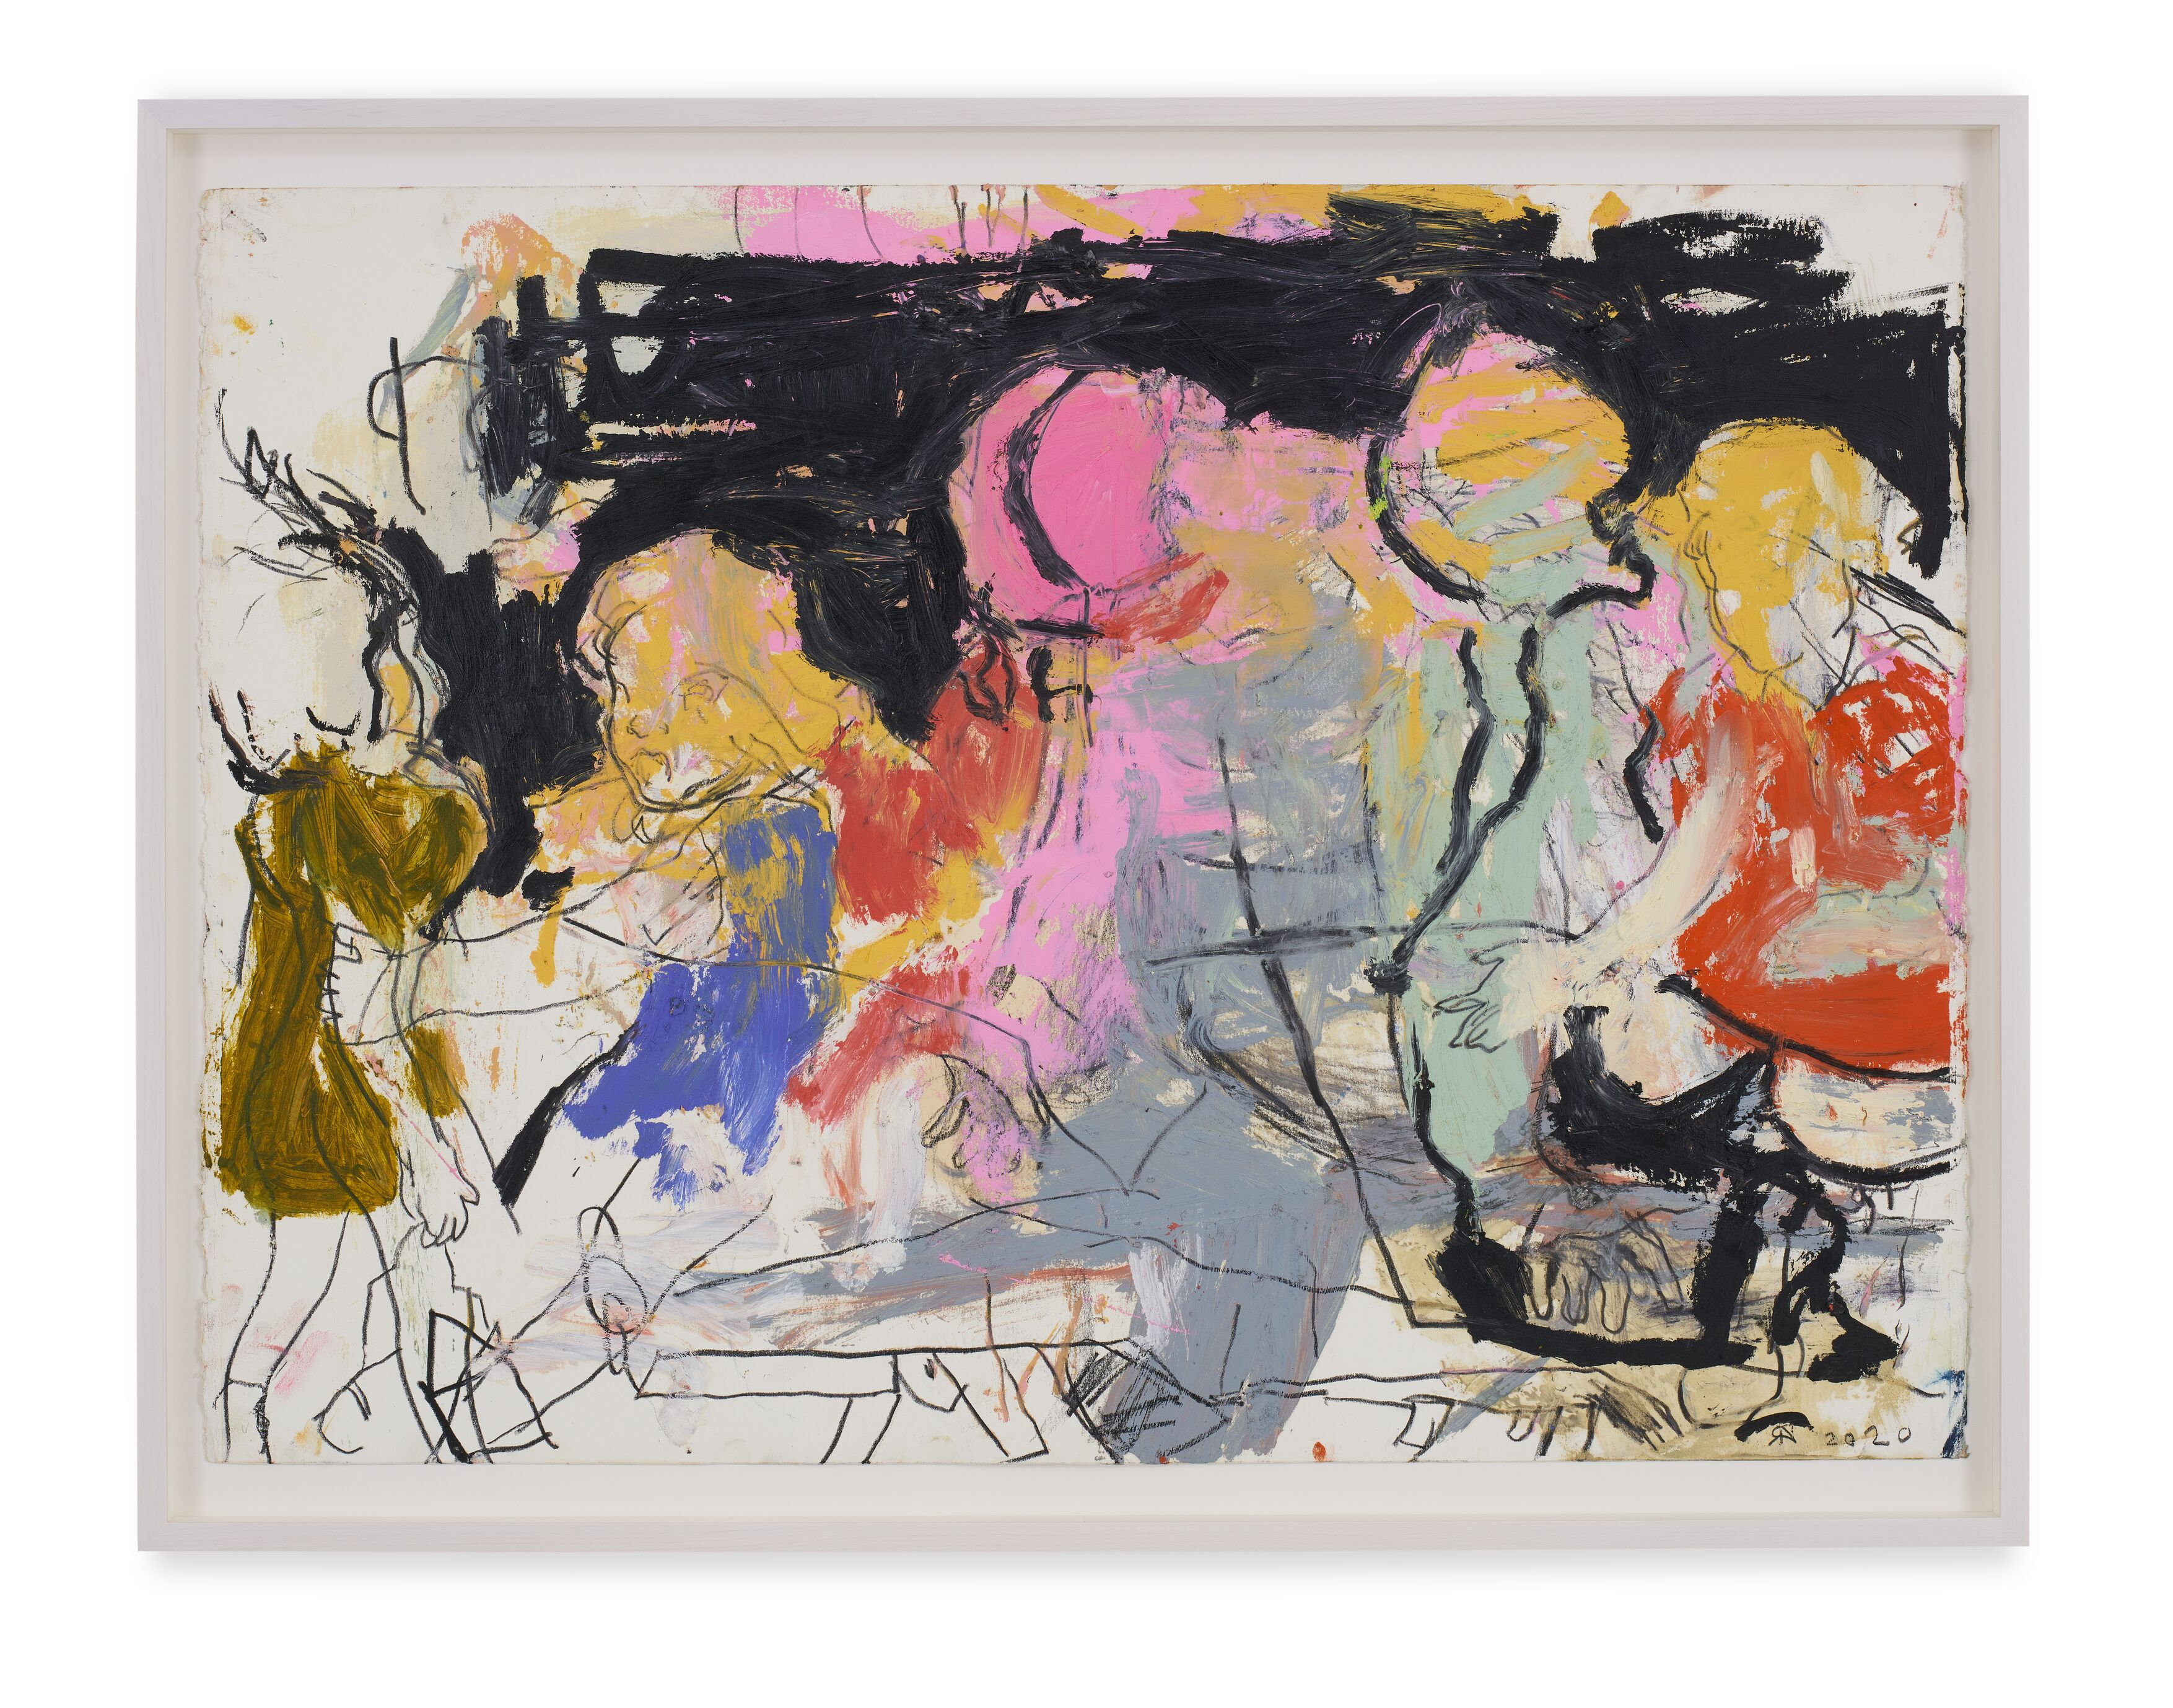 Rita Ackermann / Mama Study 8 / 2020 / Oil and China marker on paper / 55.9 x 76.2 cm / 22 x 30 in / Courtesy the artist and Hauser & Wirth. Photo: Jon Etter